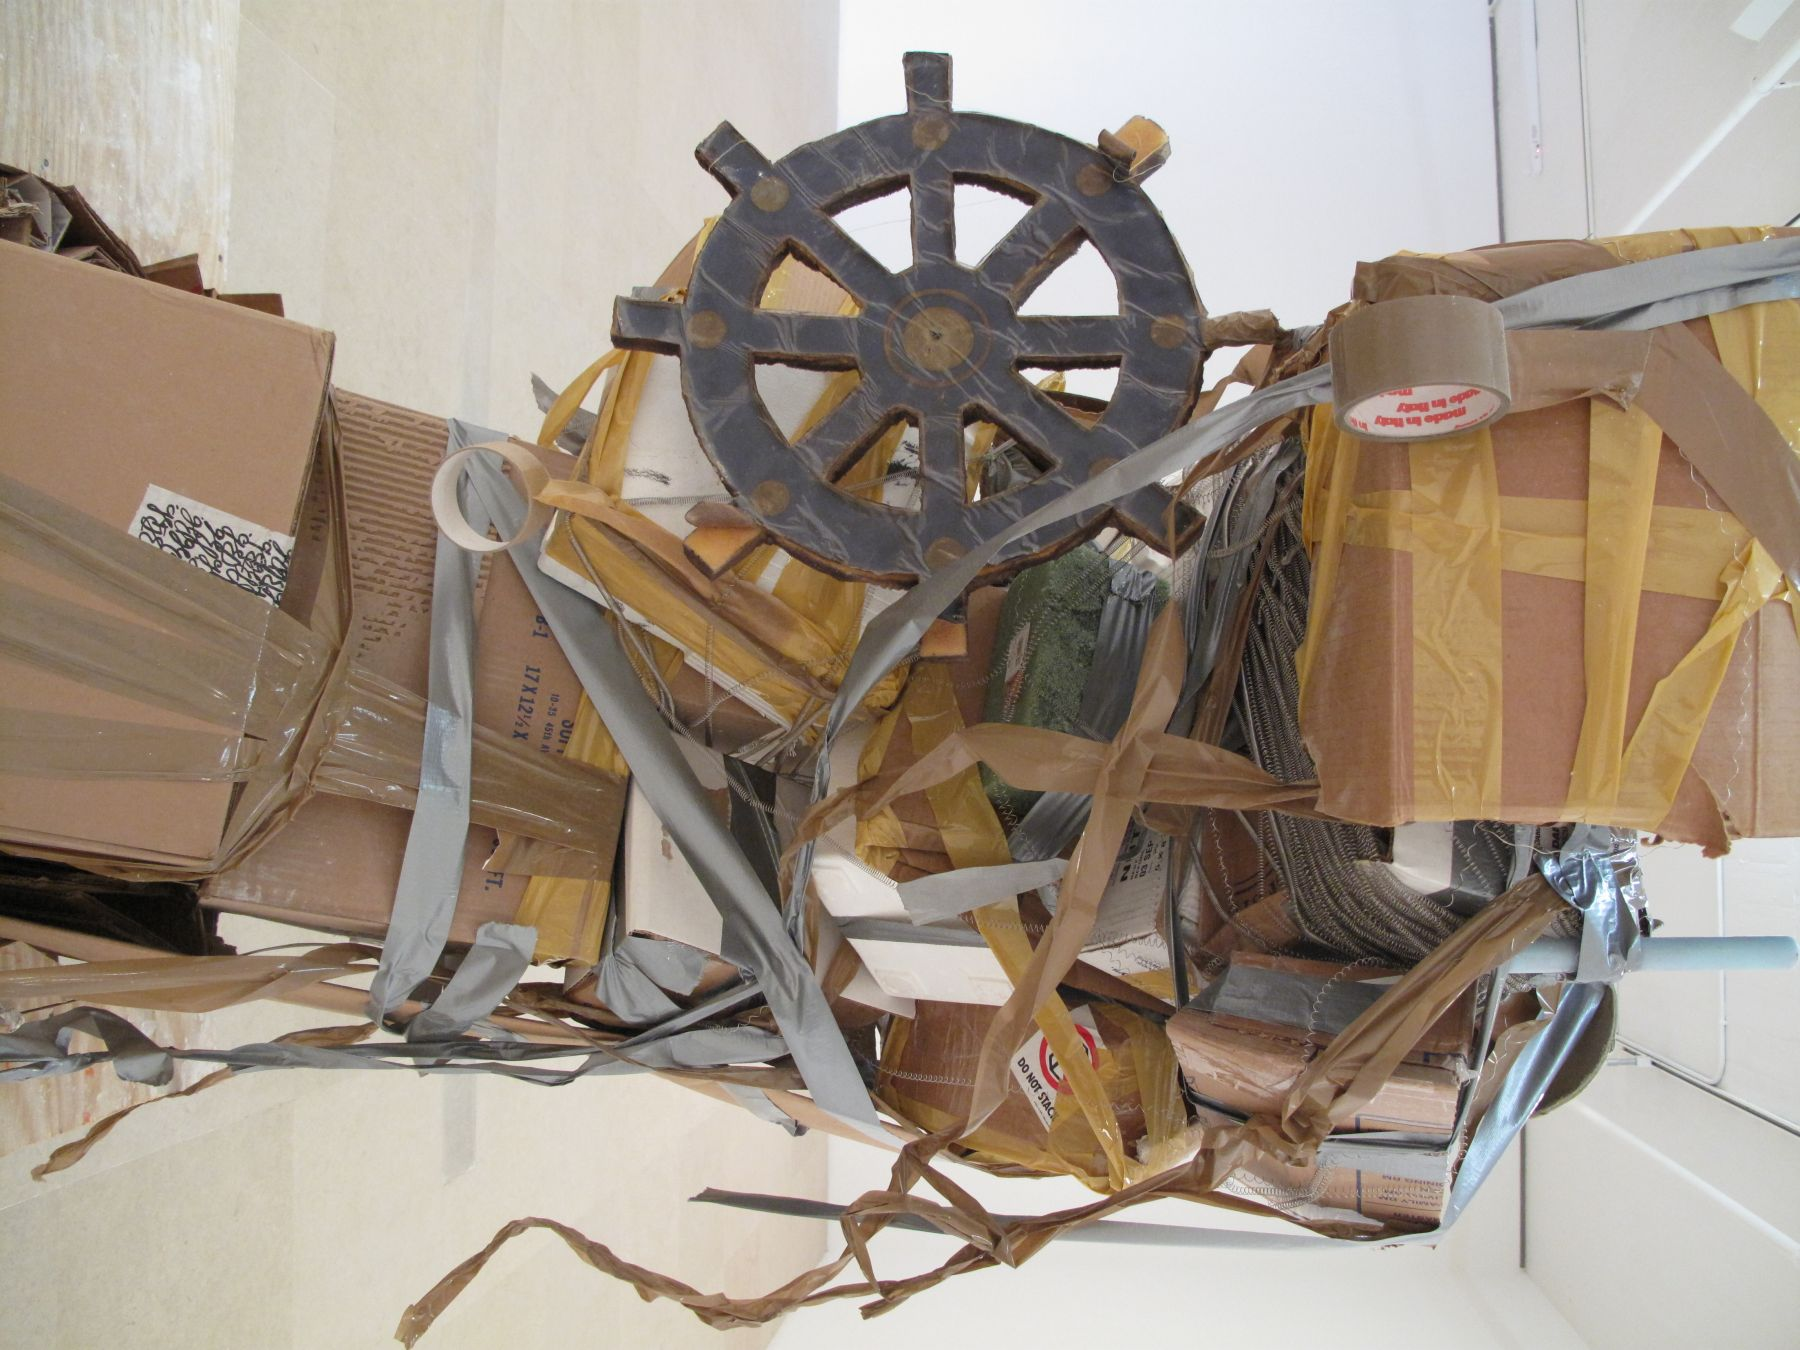 Untitled, 2010 (detail), mixed media, 87 x 75 x 57 inches